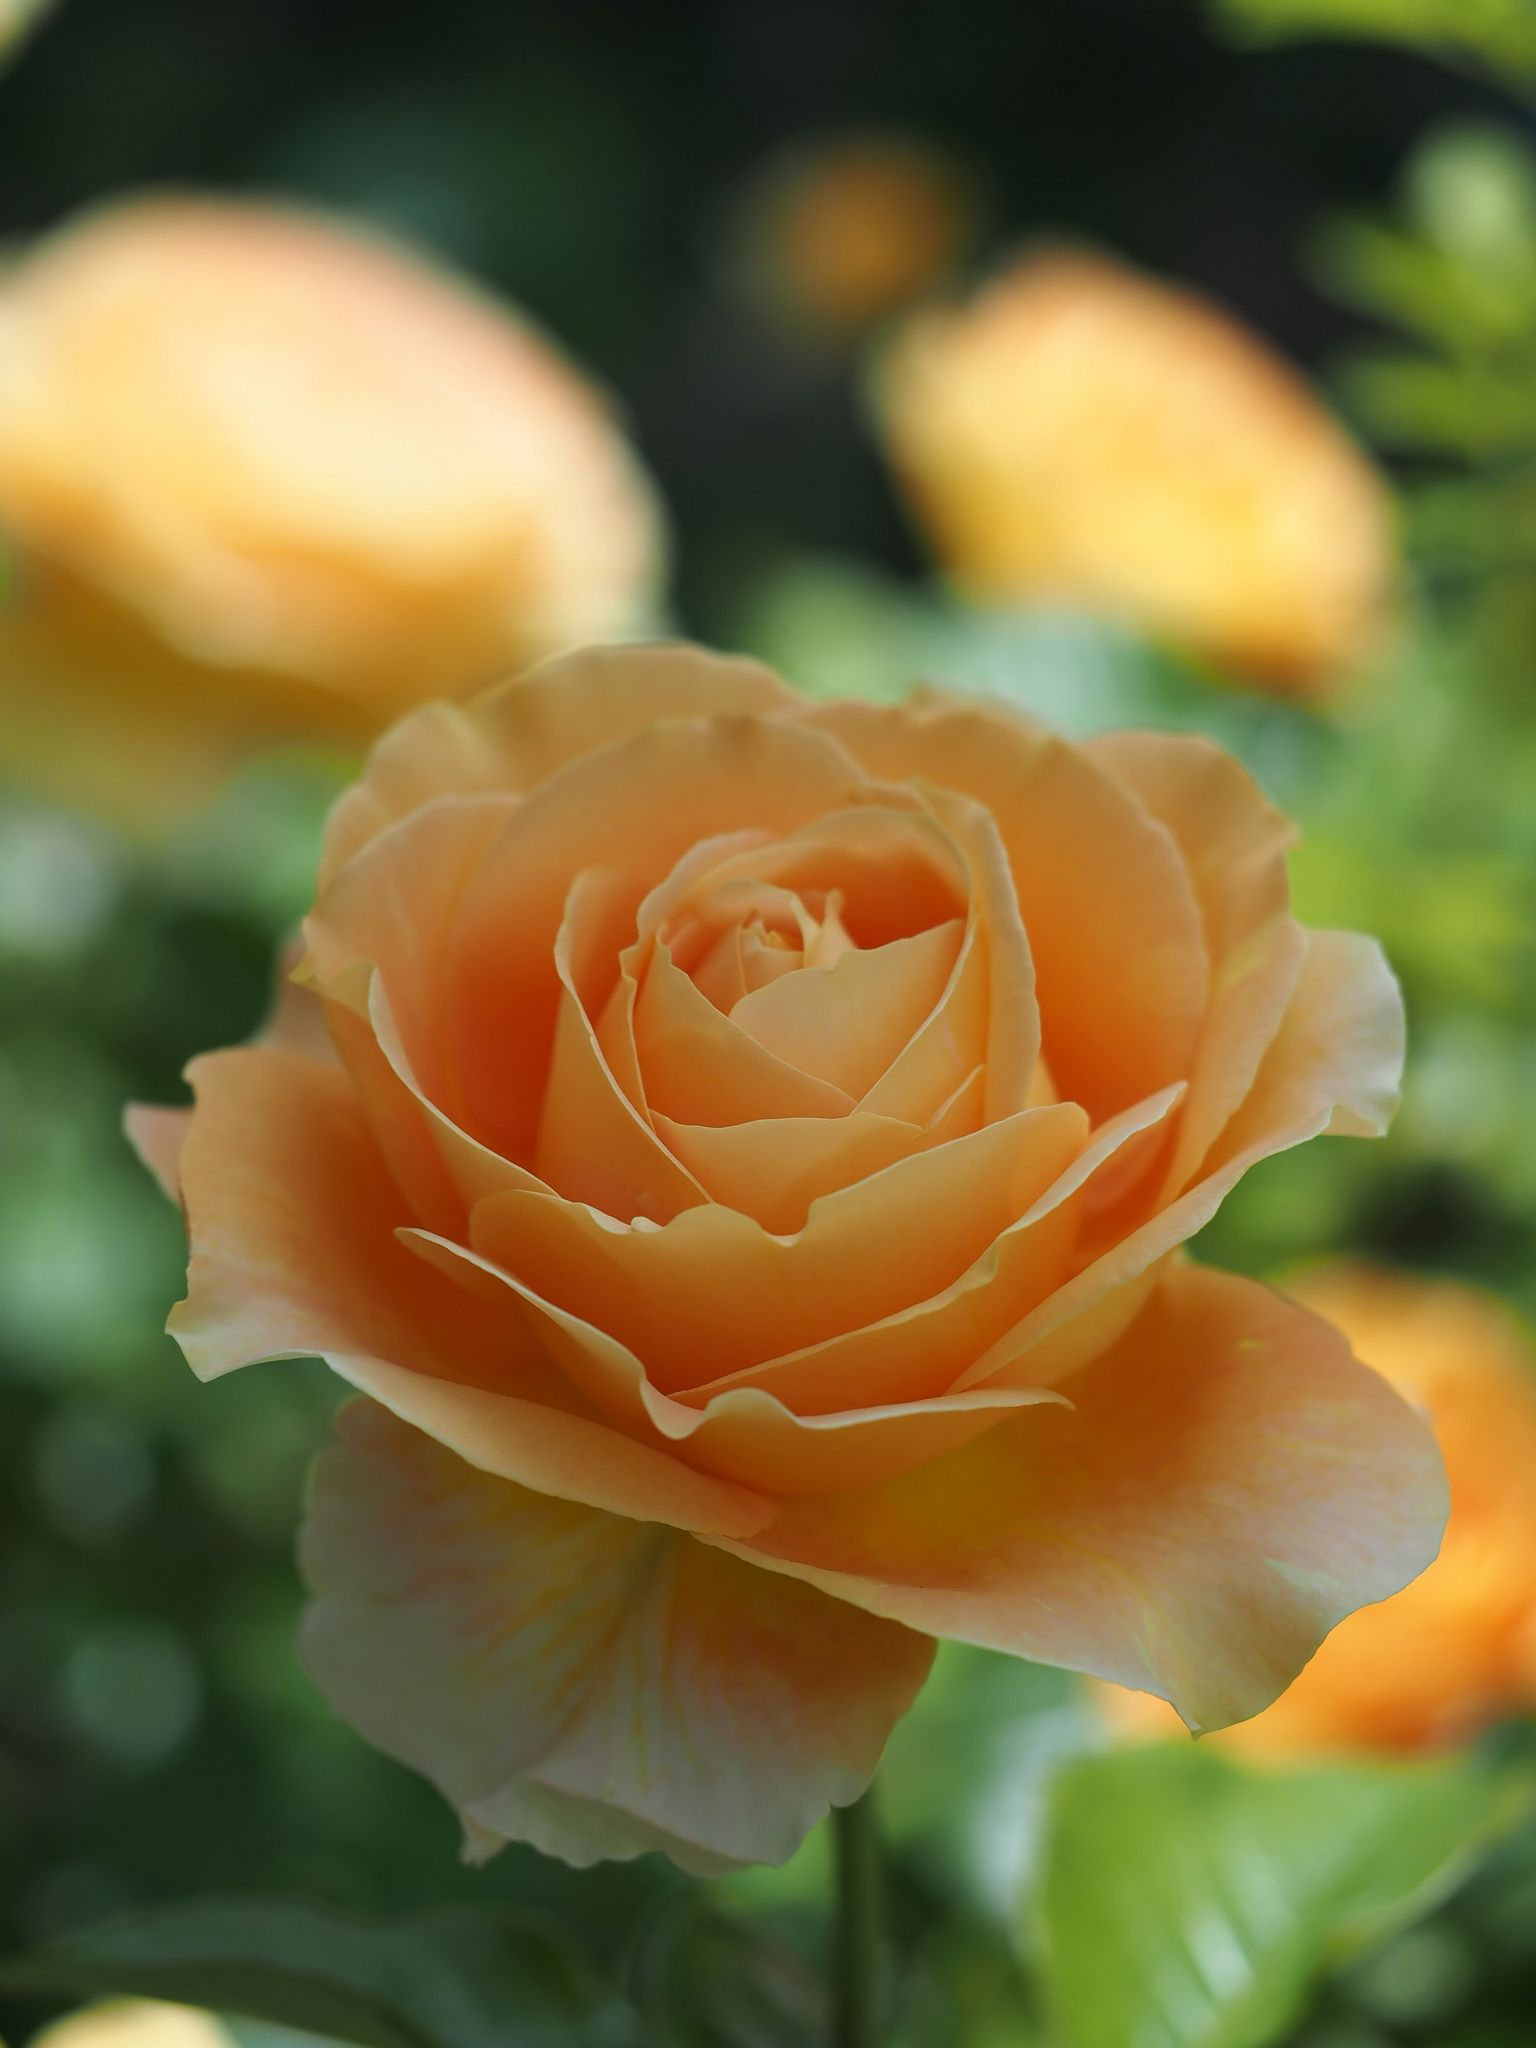 Rose candlelight バラ キャンドルライト yellow and orange bloom